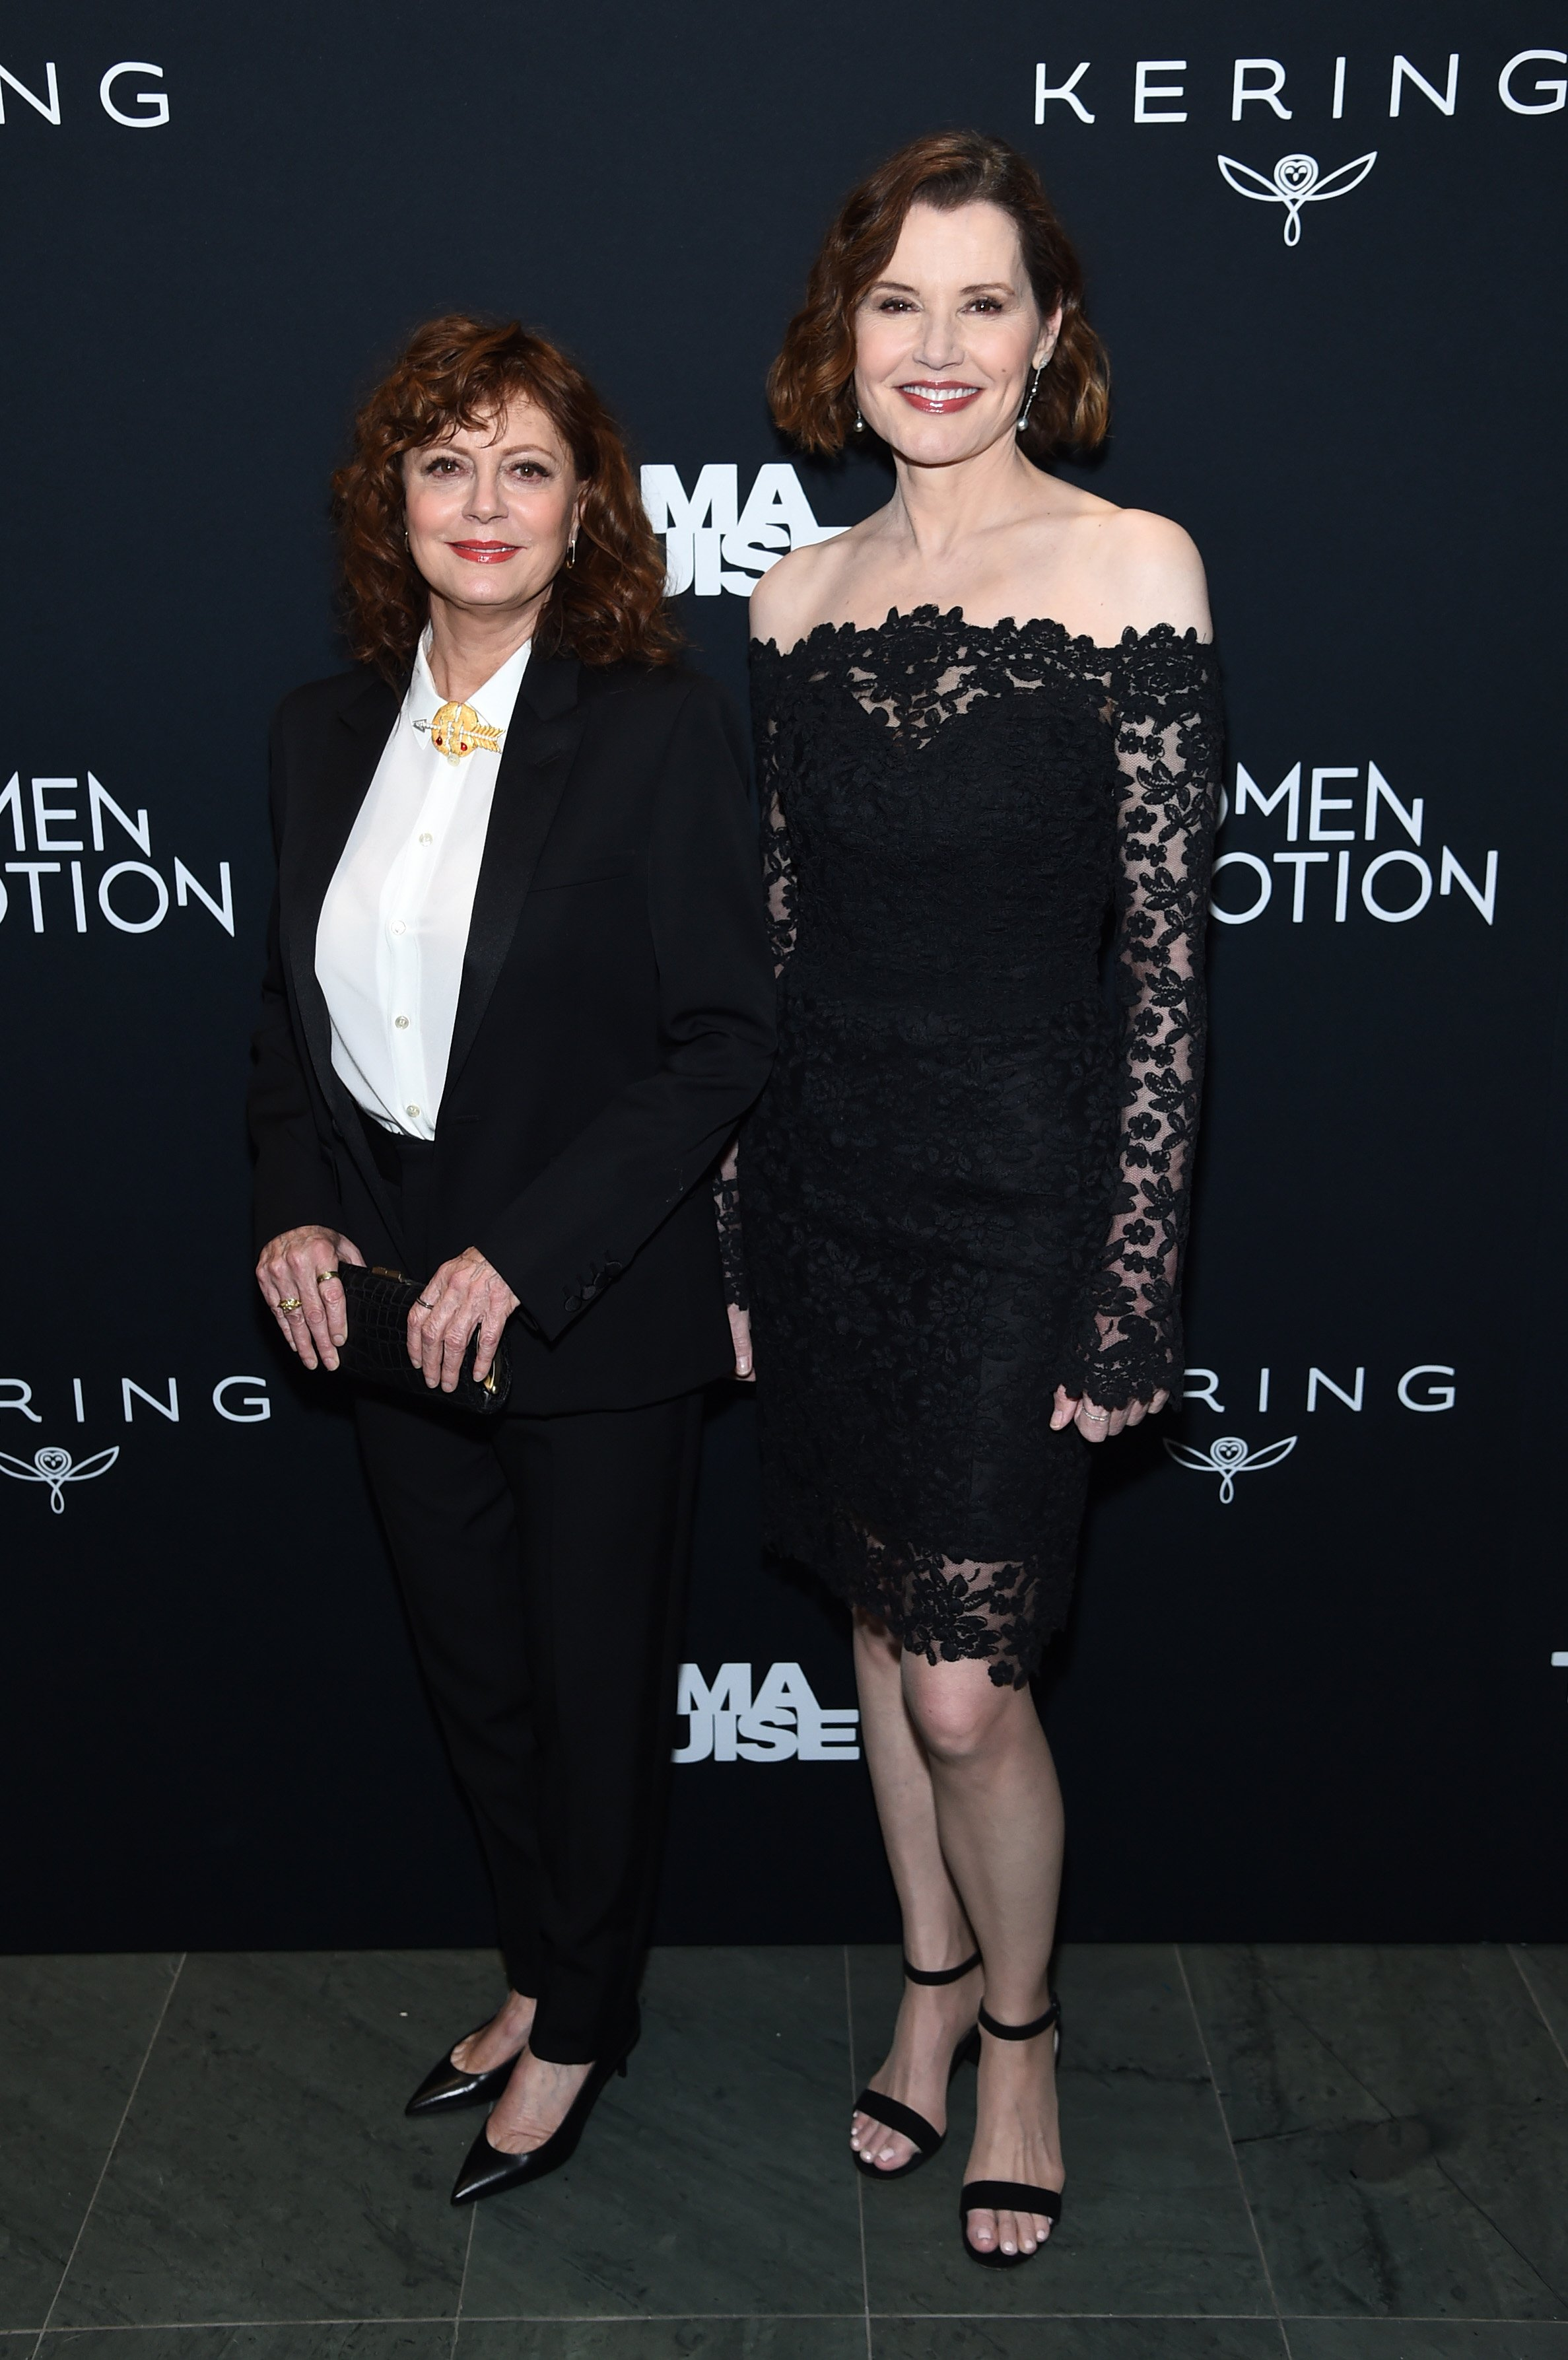 """Susan Sarandon and Geena Davis attend the screening of """"Thelma & Louise"""" Women In Motion on January 28, 2020, in New York City. 